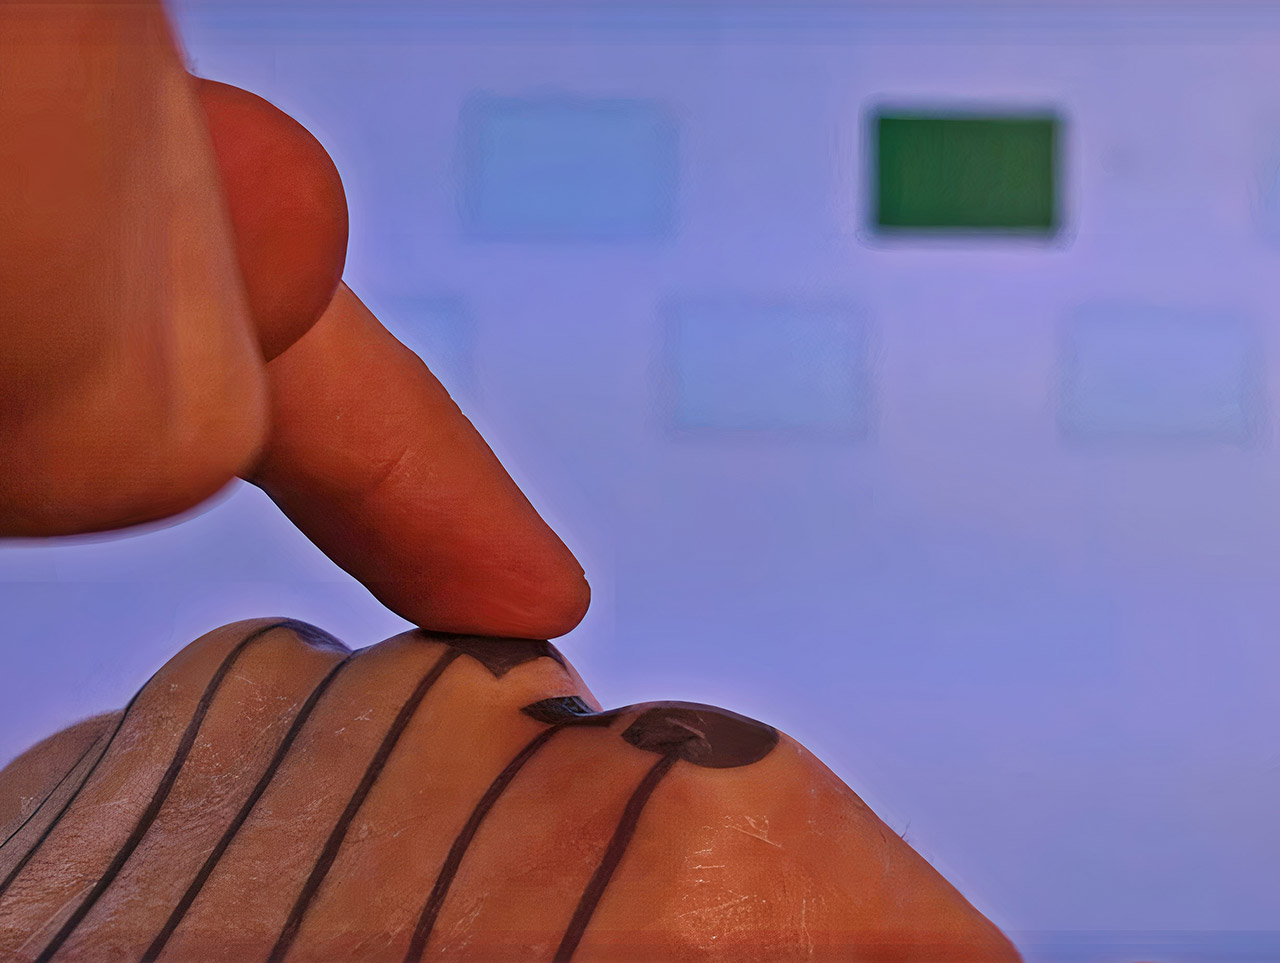 Google SkinMarks Tattoo Body Touchpad